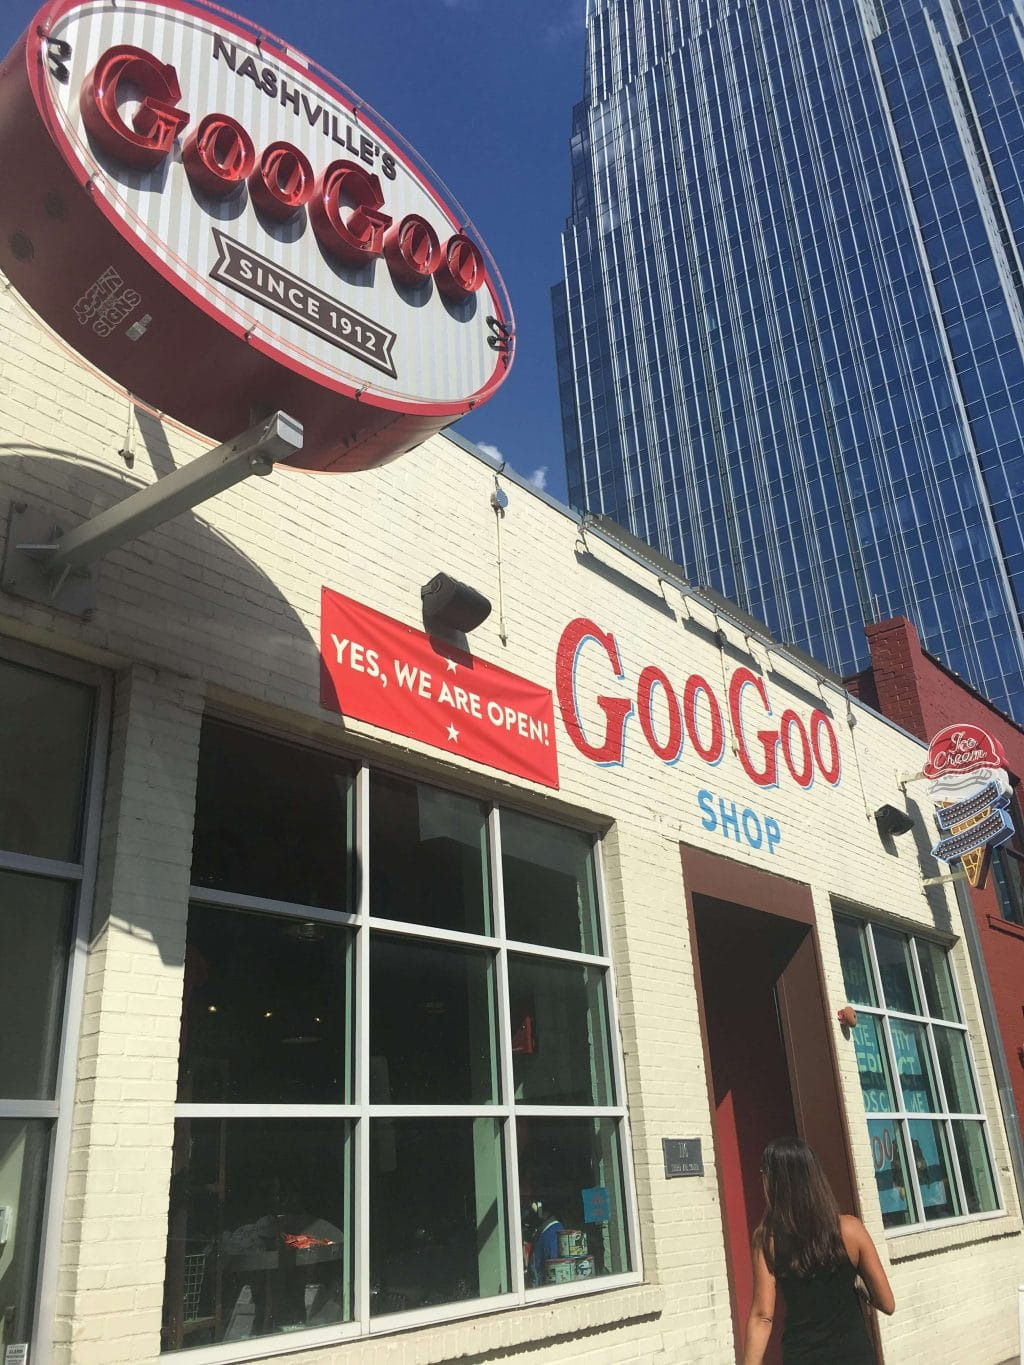 GooGoo Shop Nashville, TN